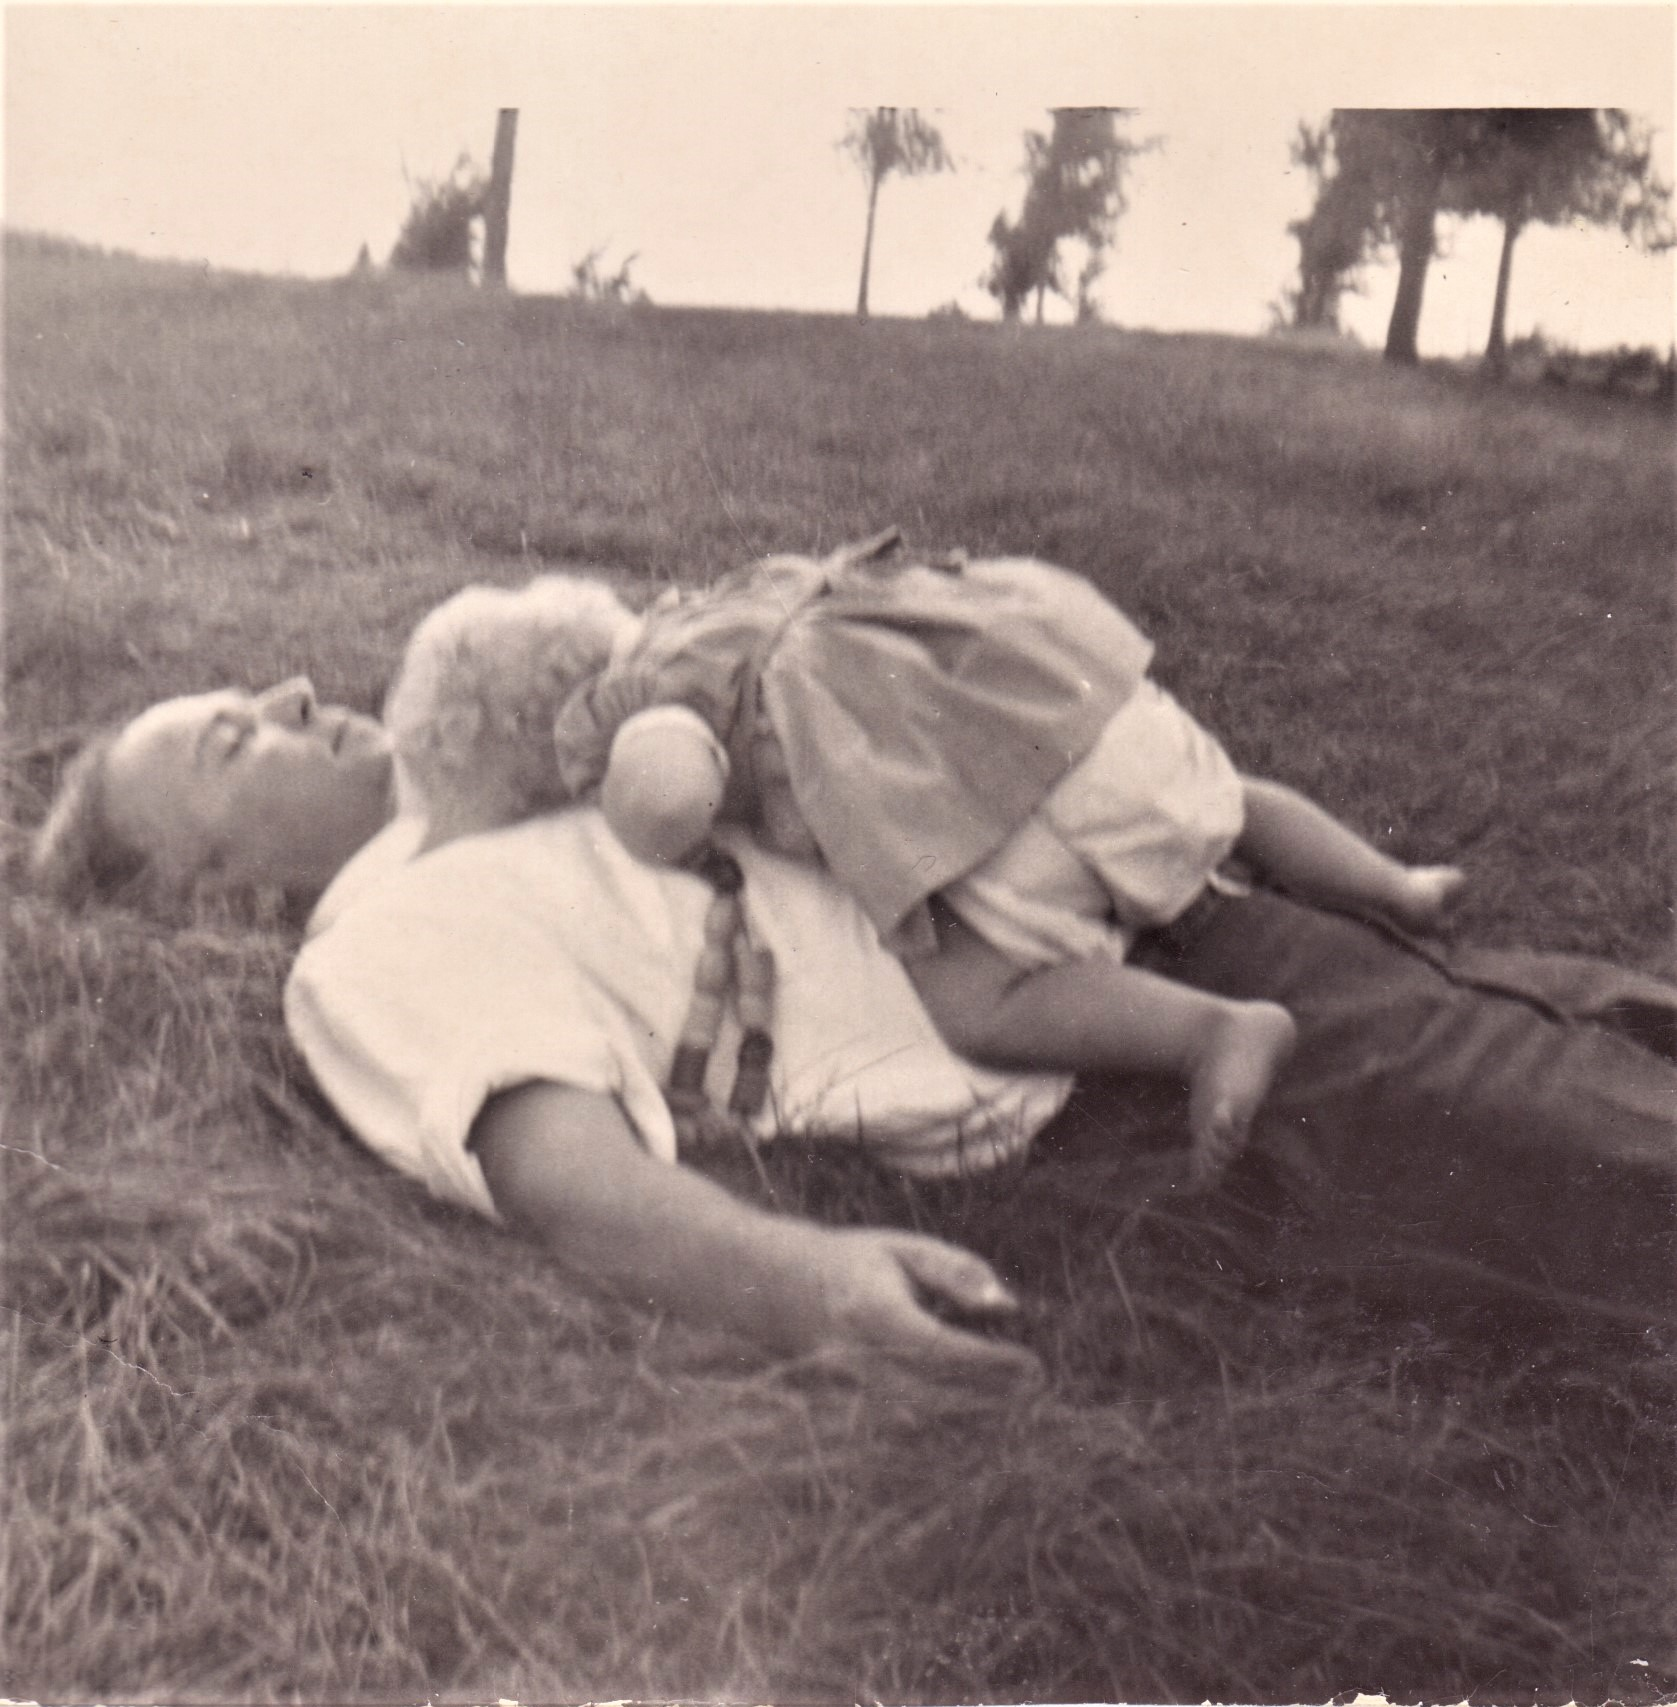 Laying in the grass